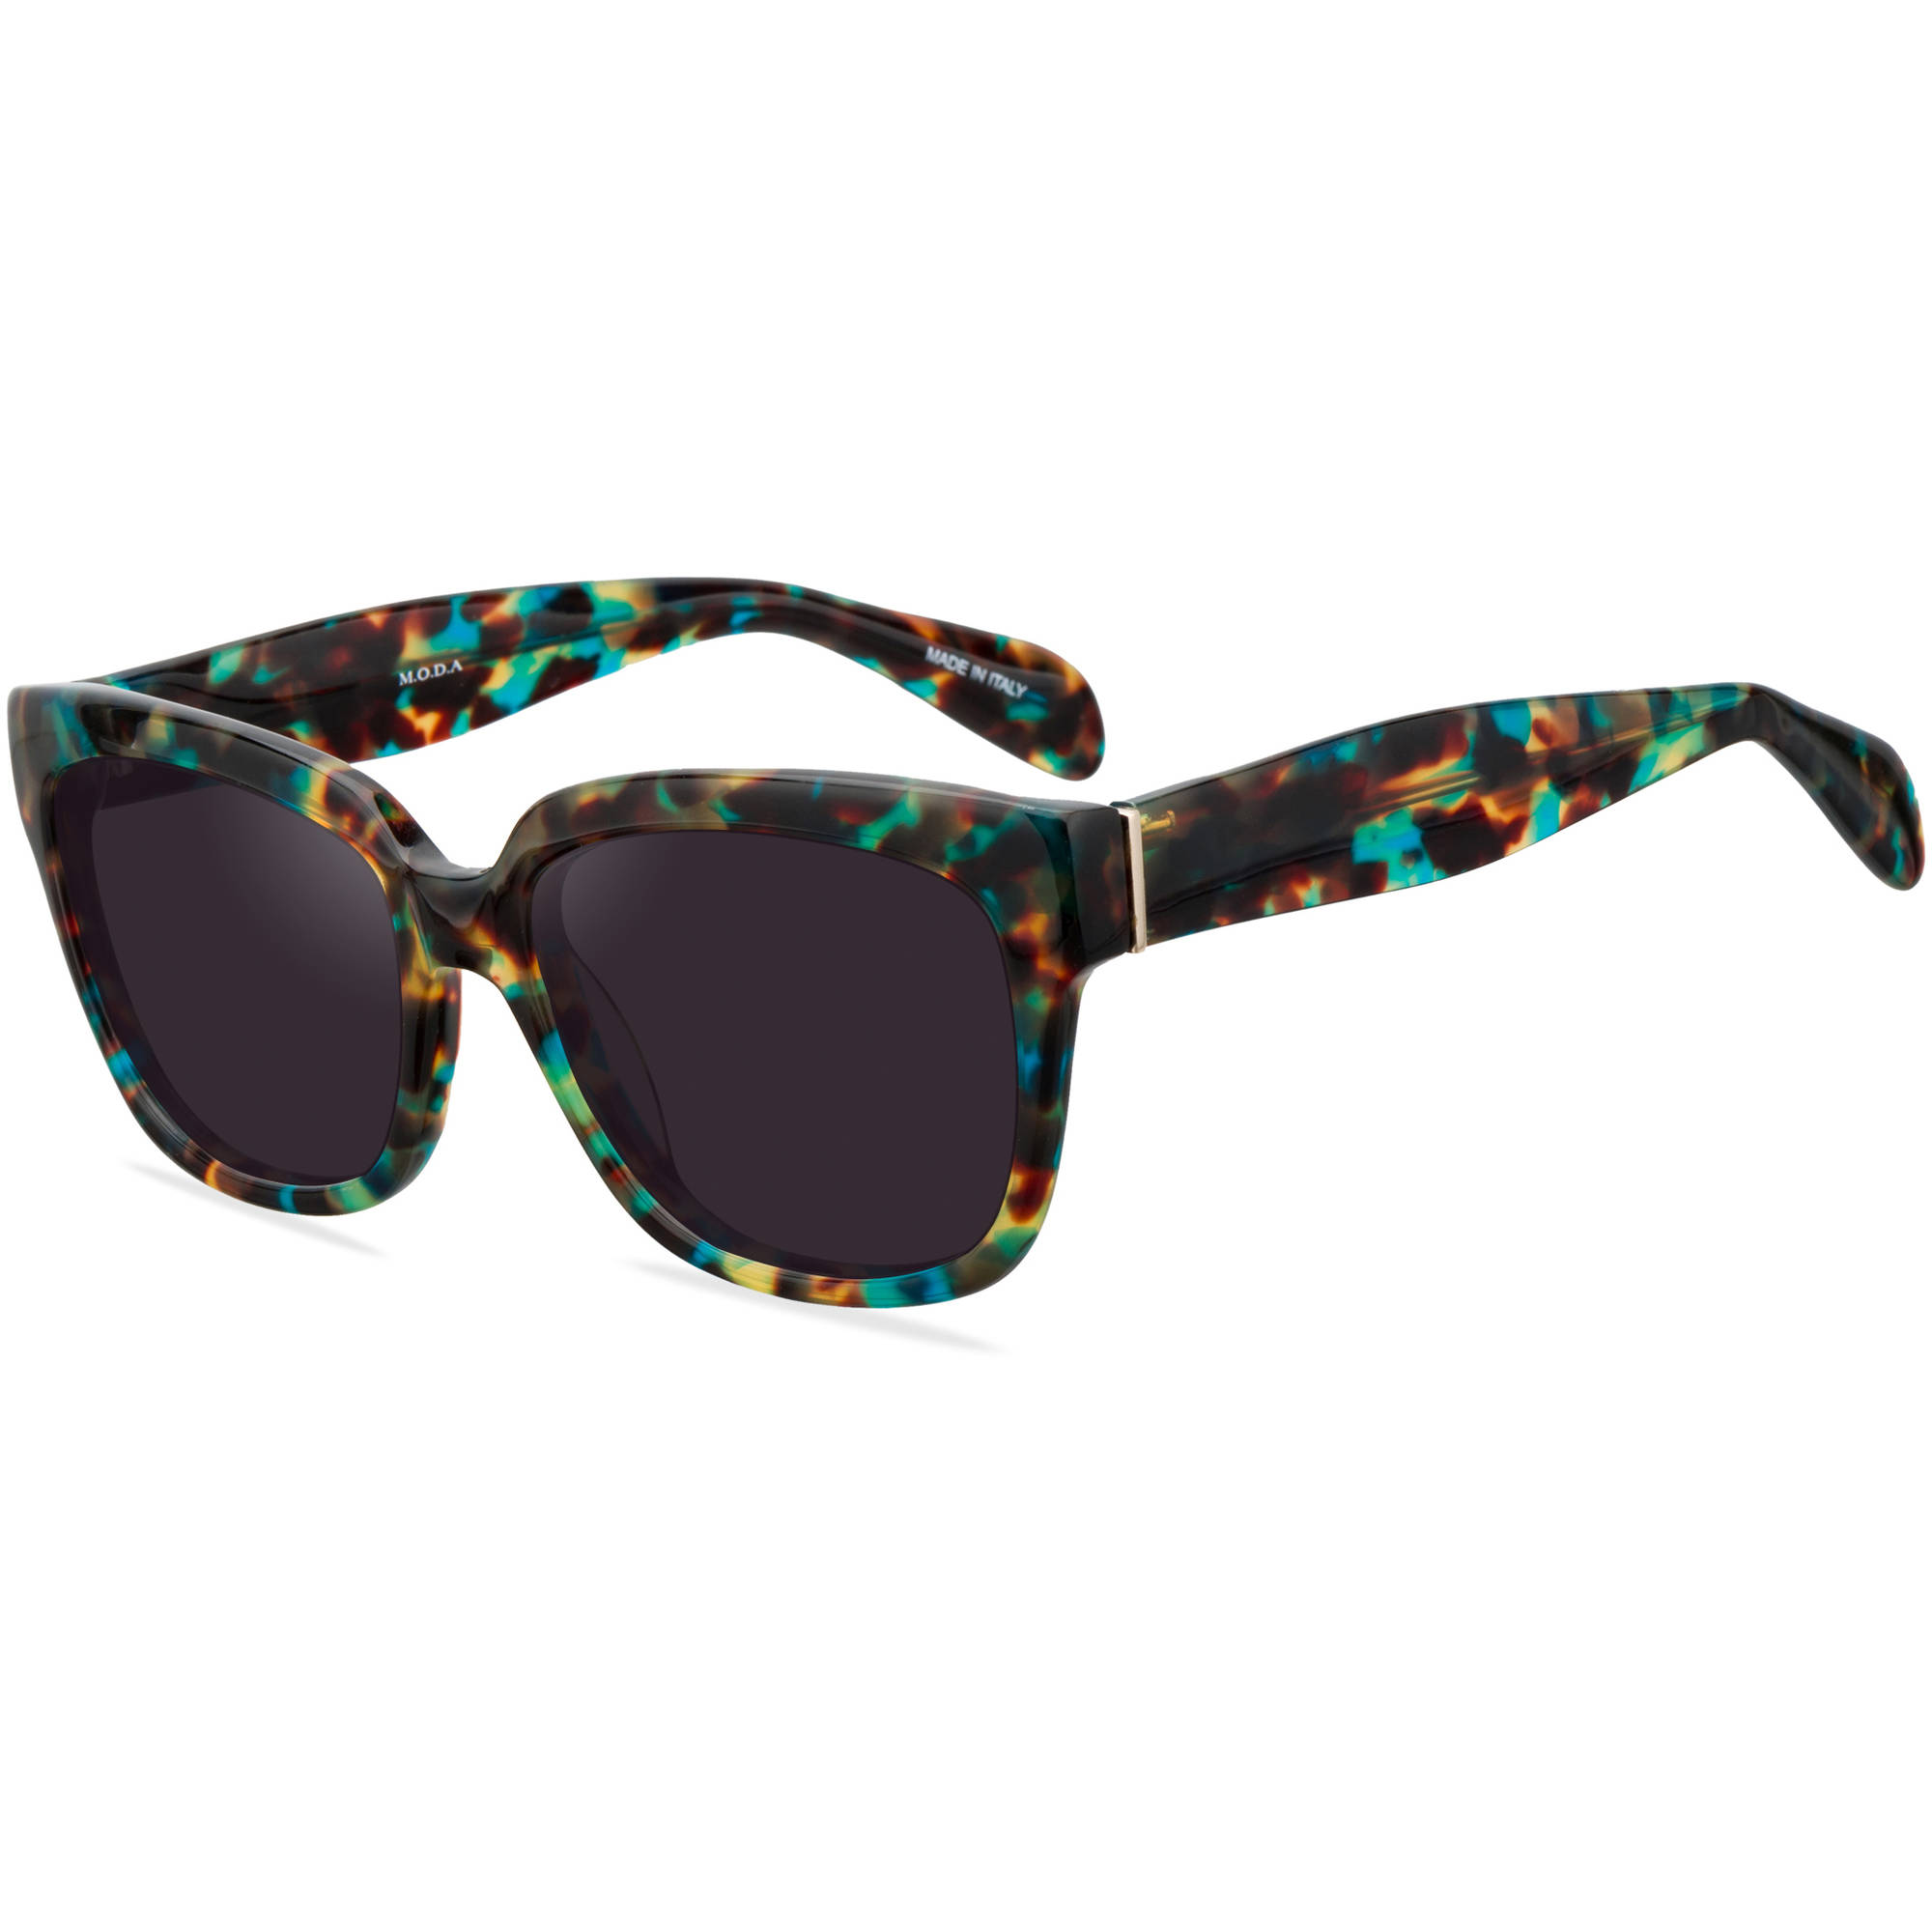 M.O.D.A. Womens Prescription Sunglasses, 101 Multi-Colored Tortoise - Walmart.com | Tuggl